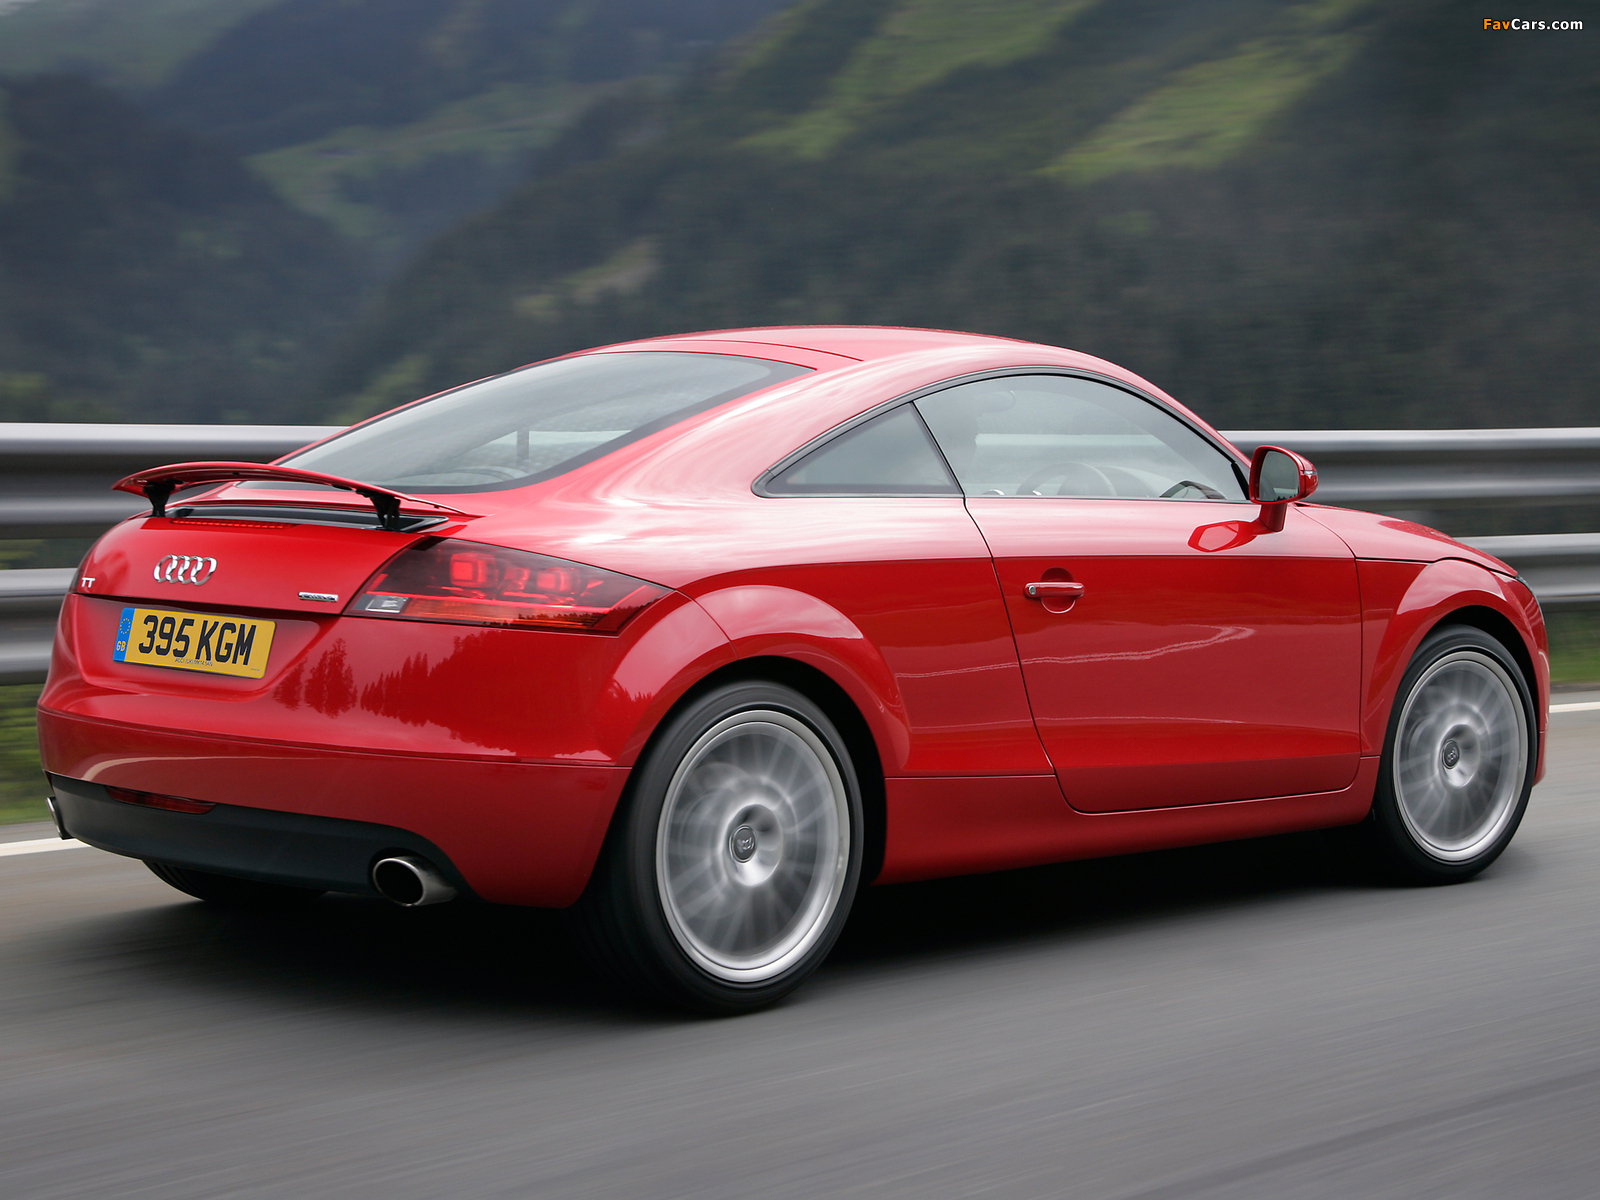 Wallpapers Of Audi Tt Coupe Uk Spec 8j 2006 10 1600x1200